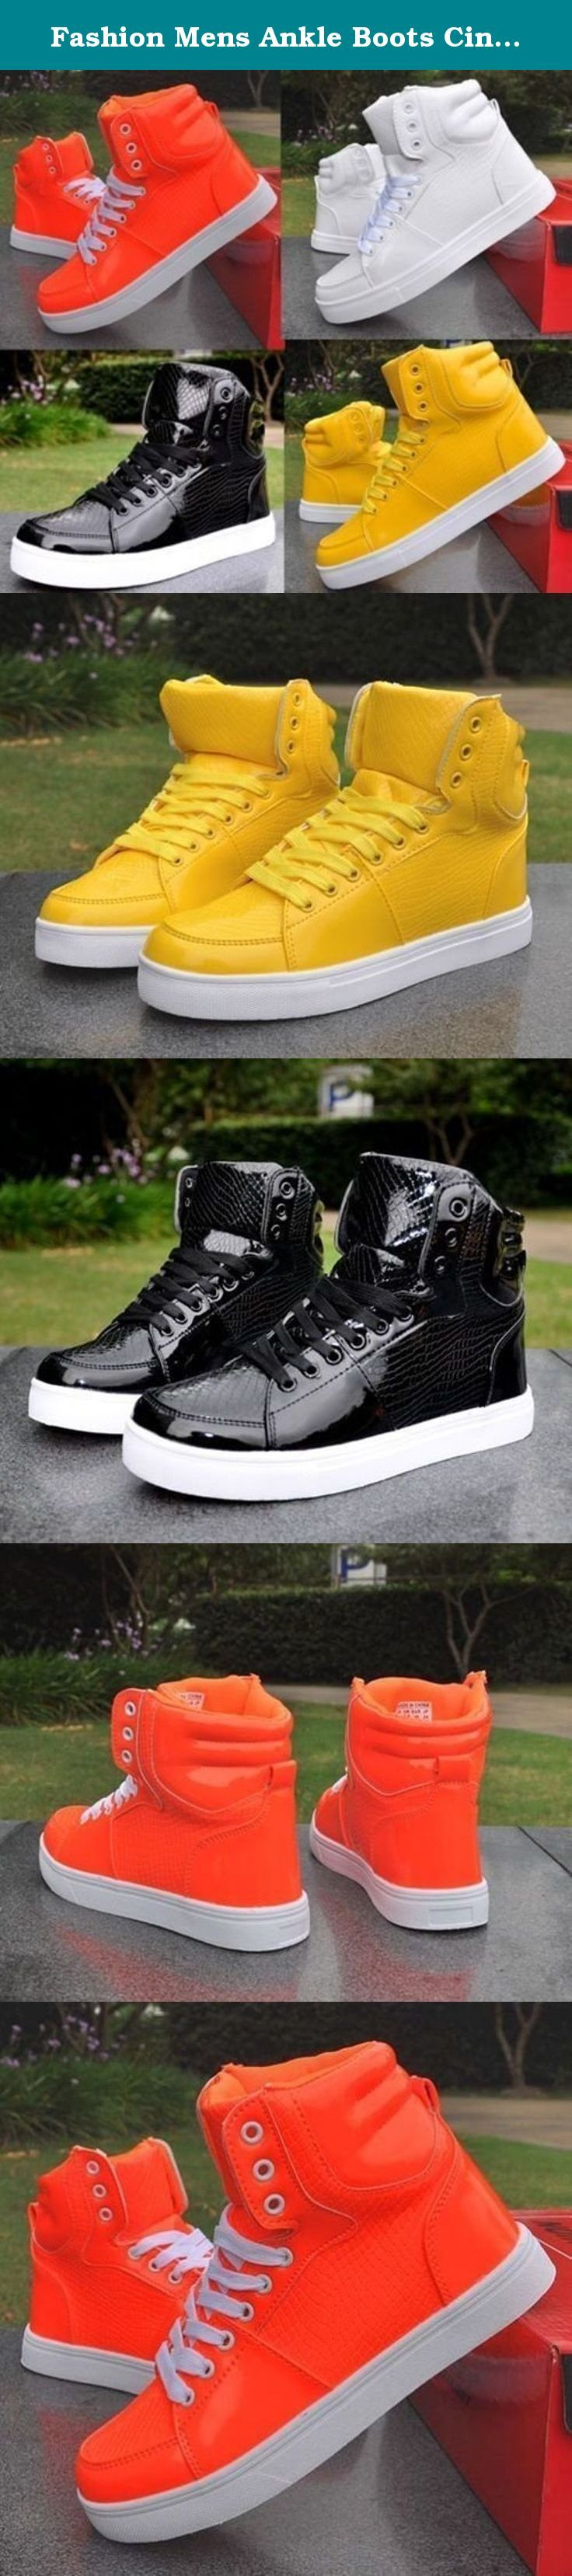 Fashion Mens Ankle Boots Cingulate Hip-hop Korean High shoes Casual Shoes. Material: Leather Color:Black.Yellow.White.Orange Size: 39/40/41/42/43/44/45.